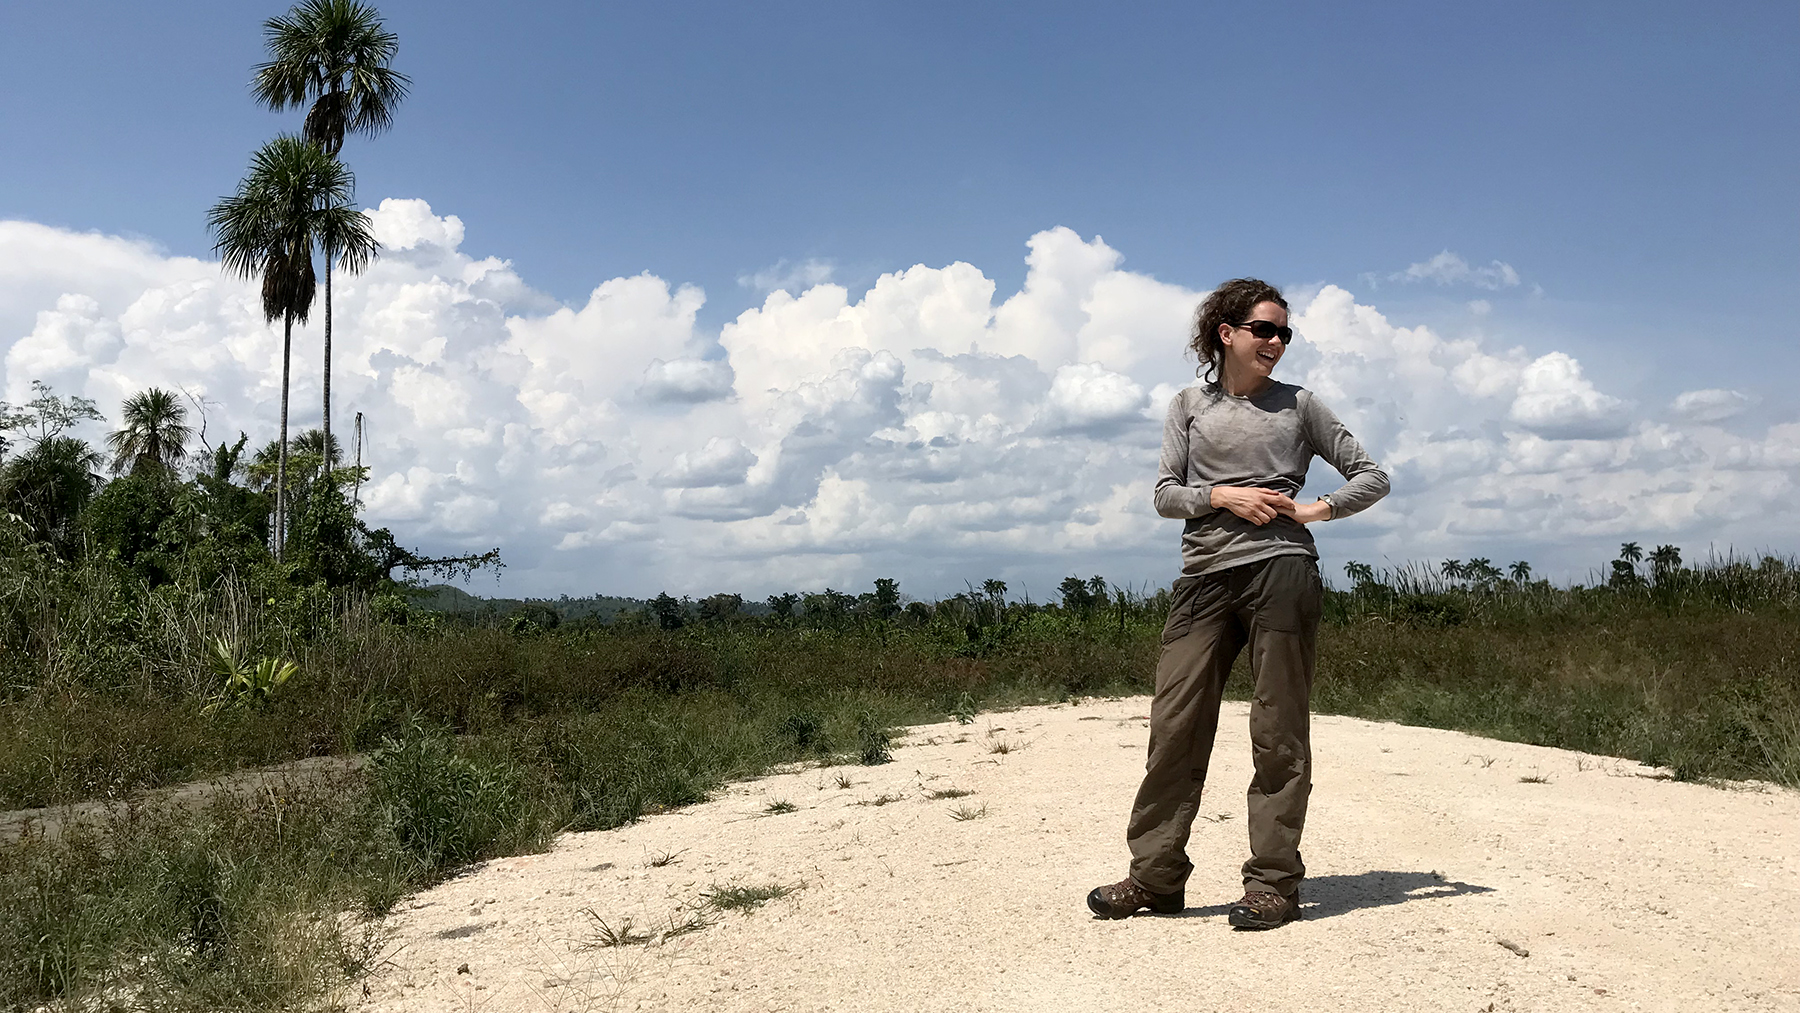 1.	U. of I. graduate student Jeannie Larmon surveys the landscape before the trek. Photo by Thomas Franklin